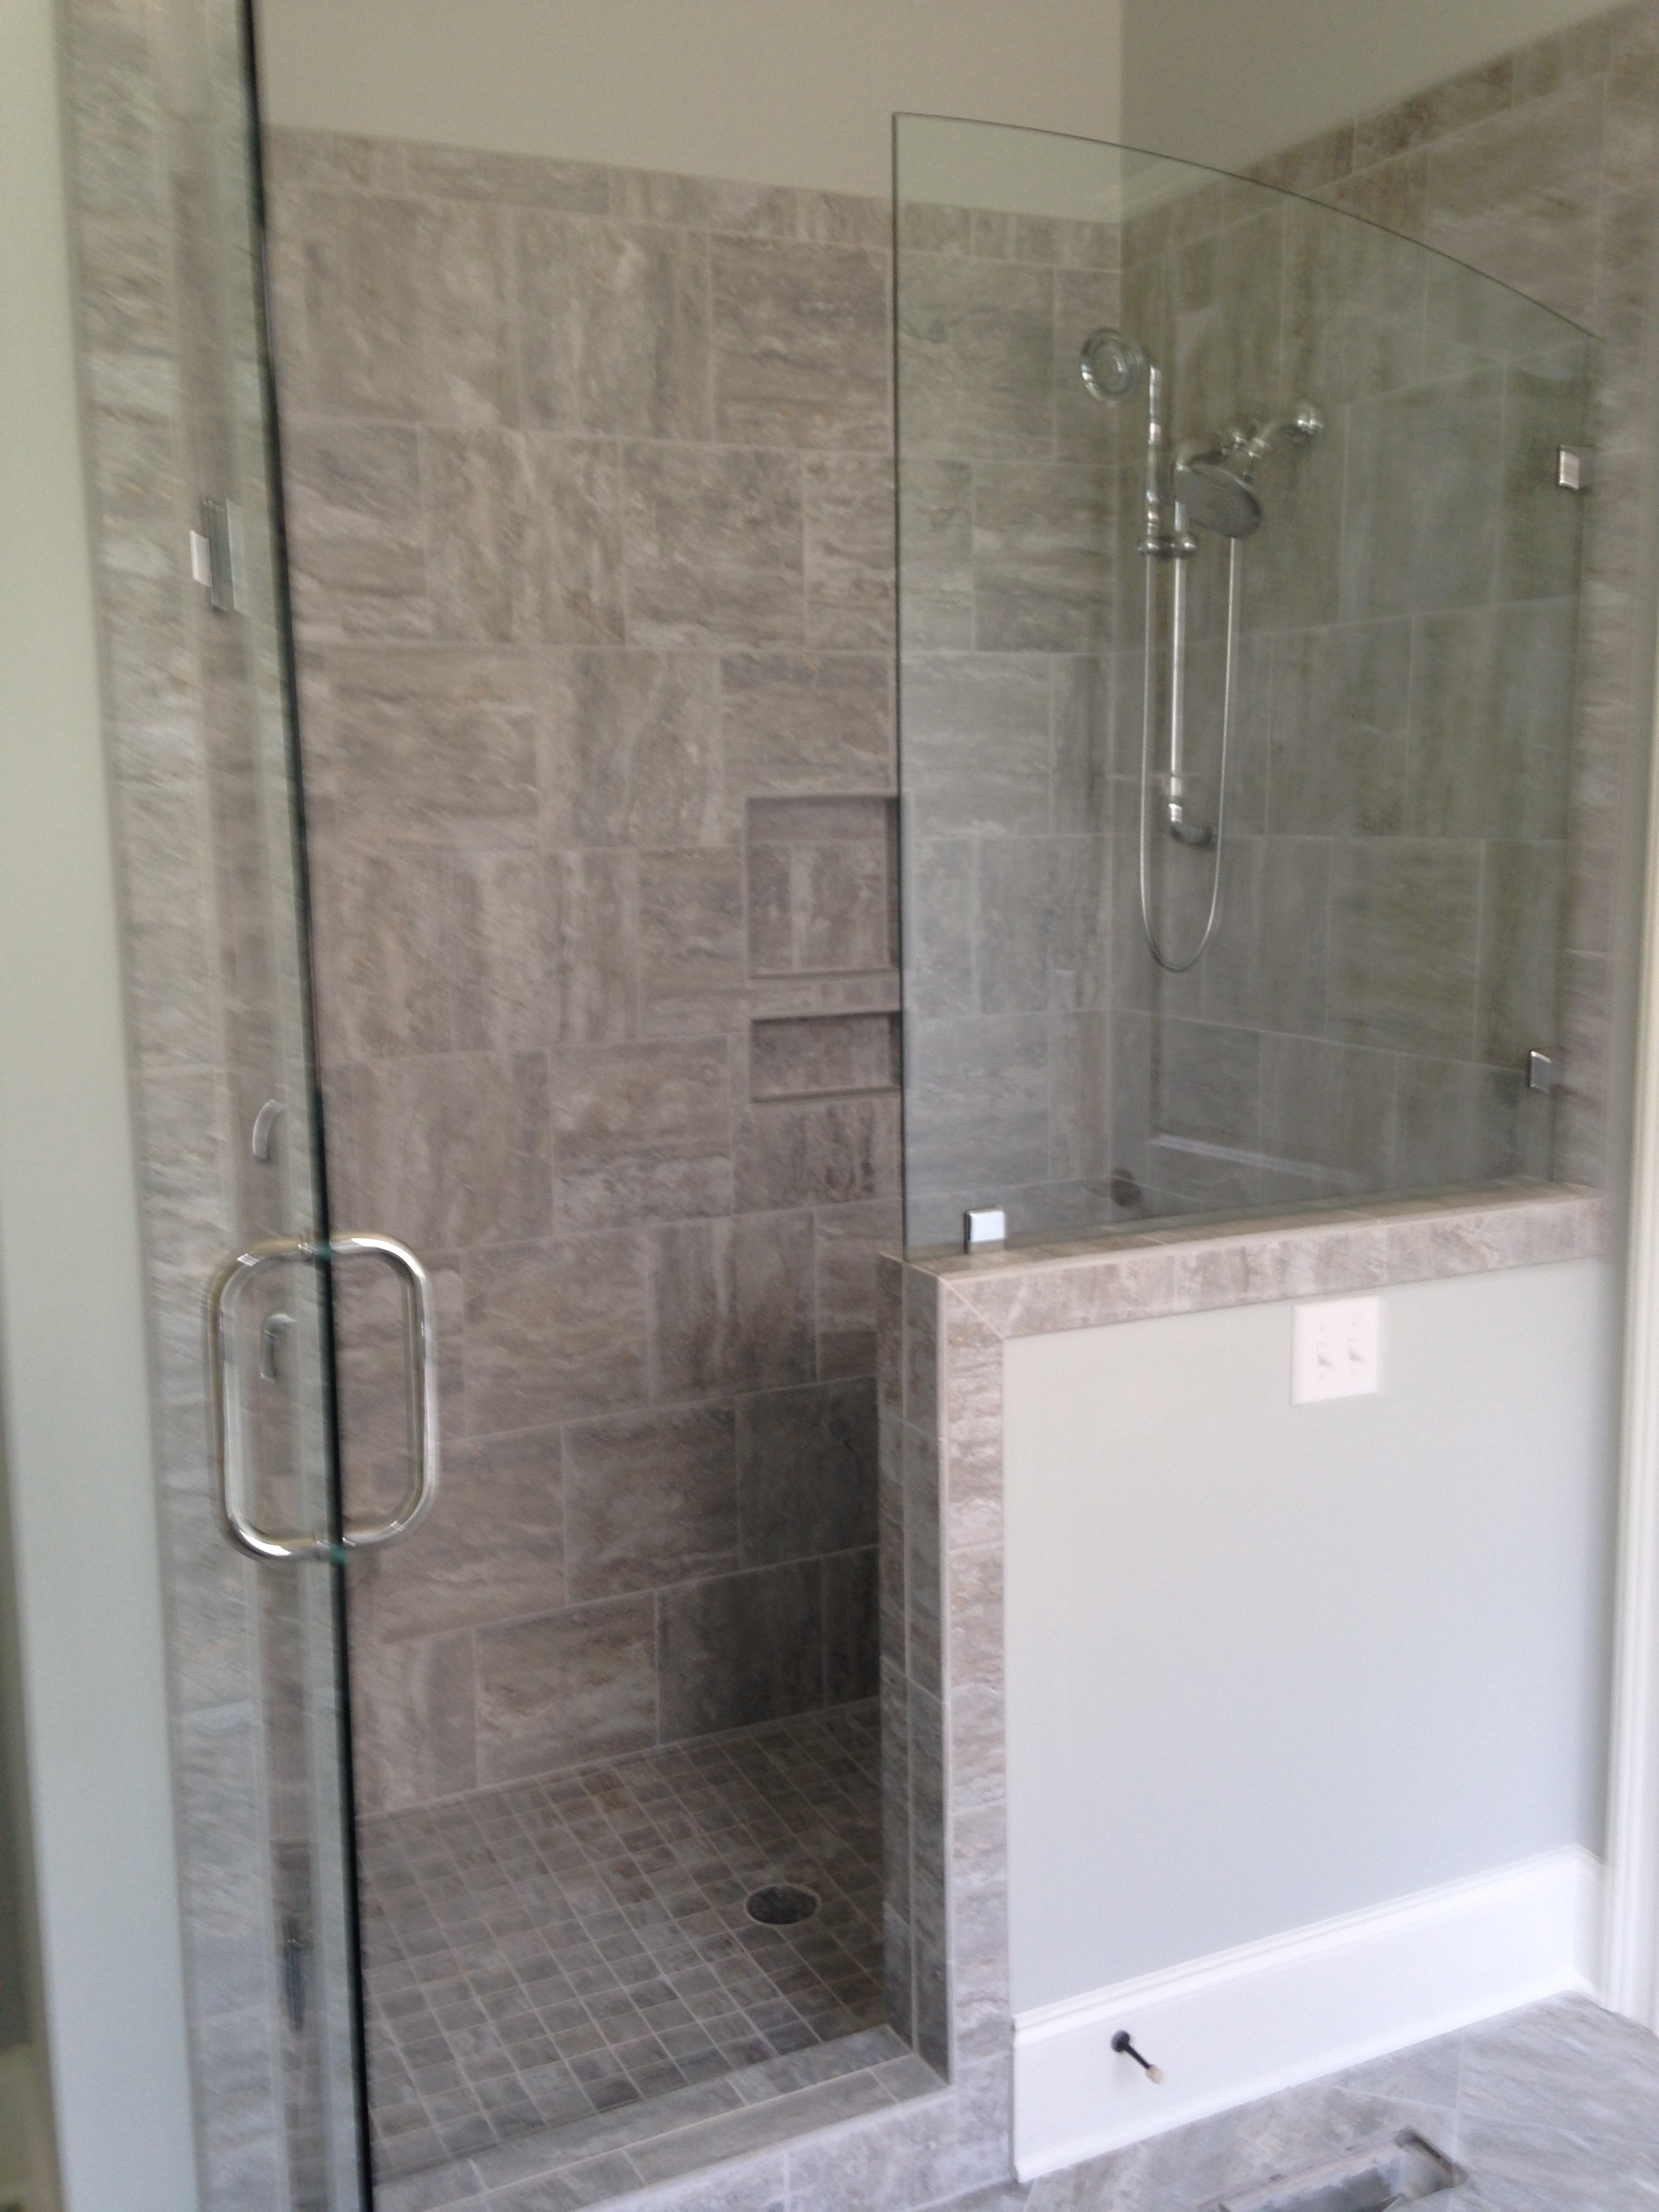 vertical install youtube running tile showers watch bond shower